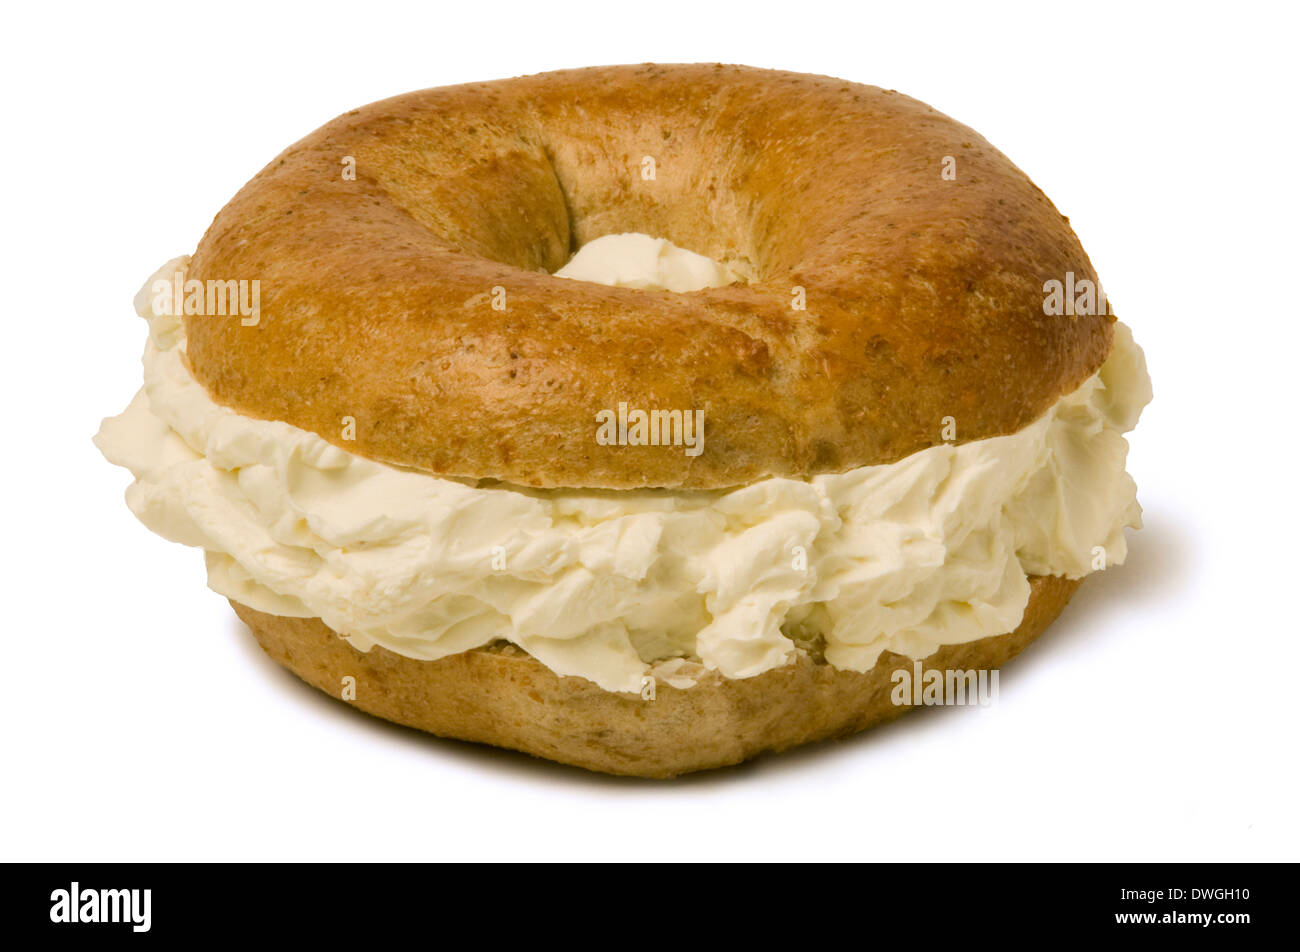 Whole wheat bagel filled with a generous amount of cream cheese - Stock Image